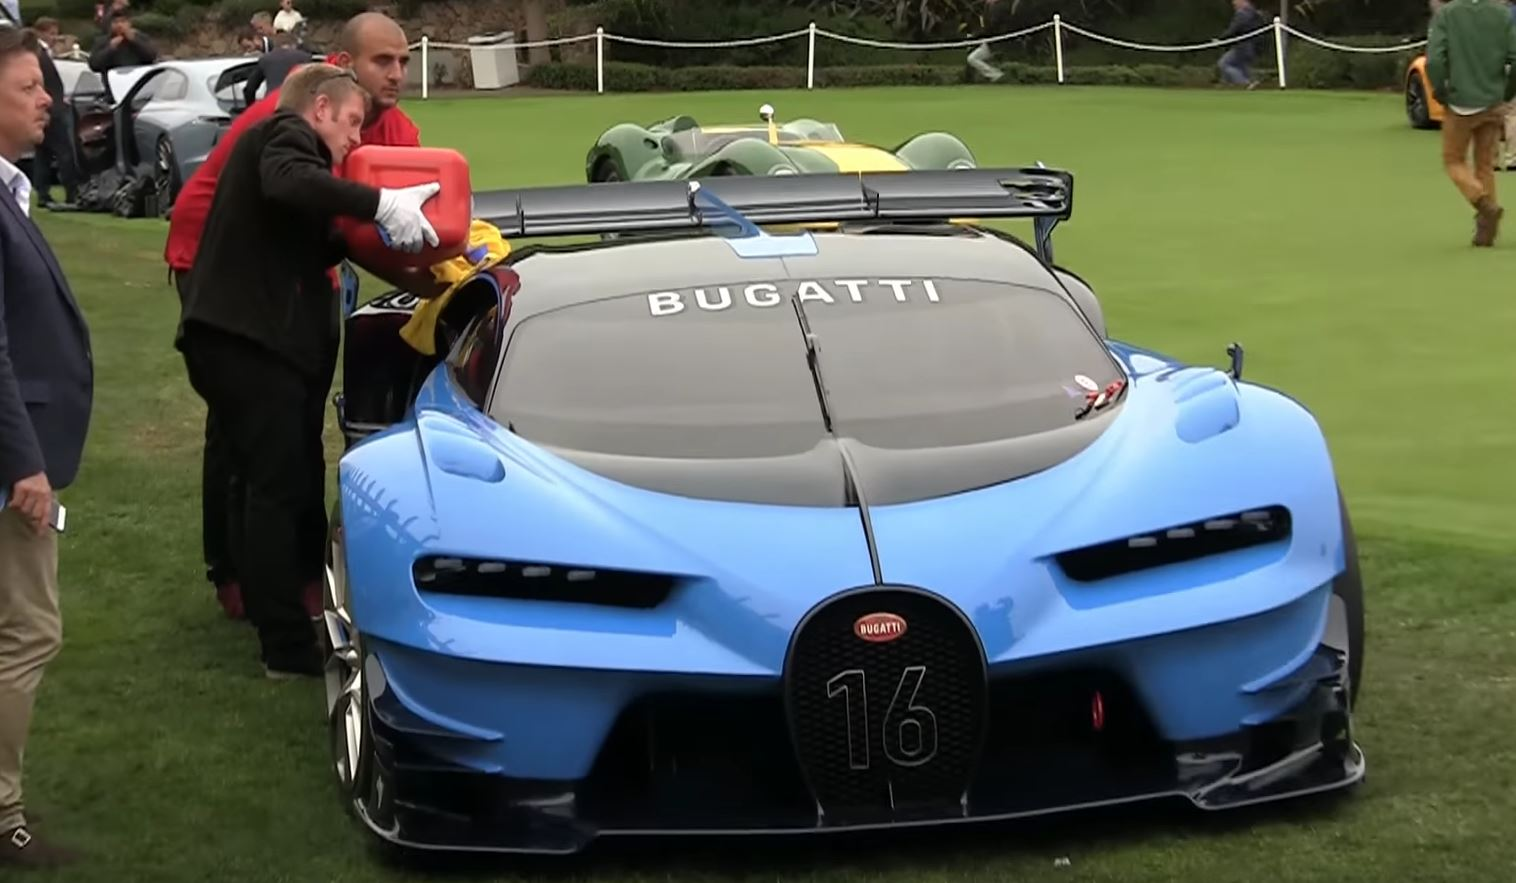 Bugatti vision gran turismo is a fully functional concept car w16 engine sounds beastly video